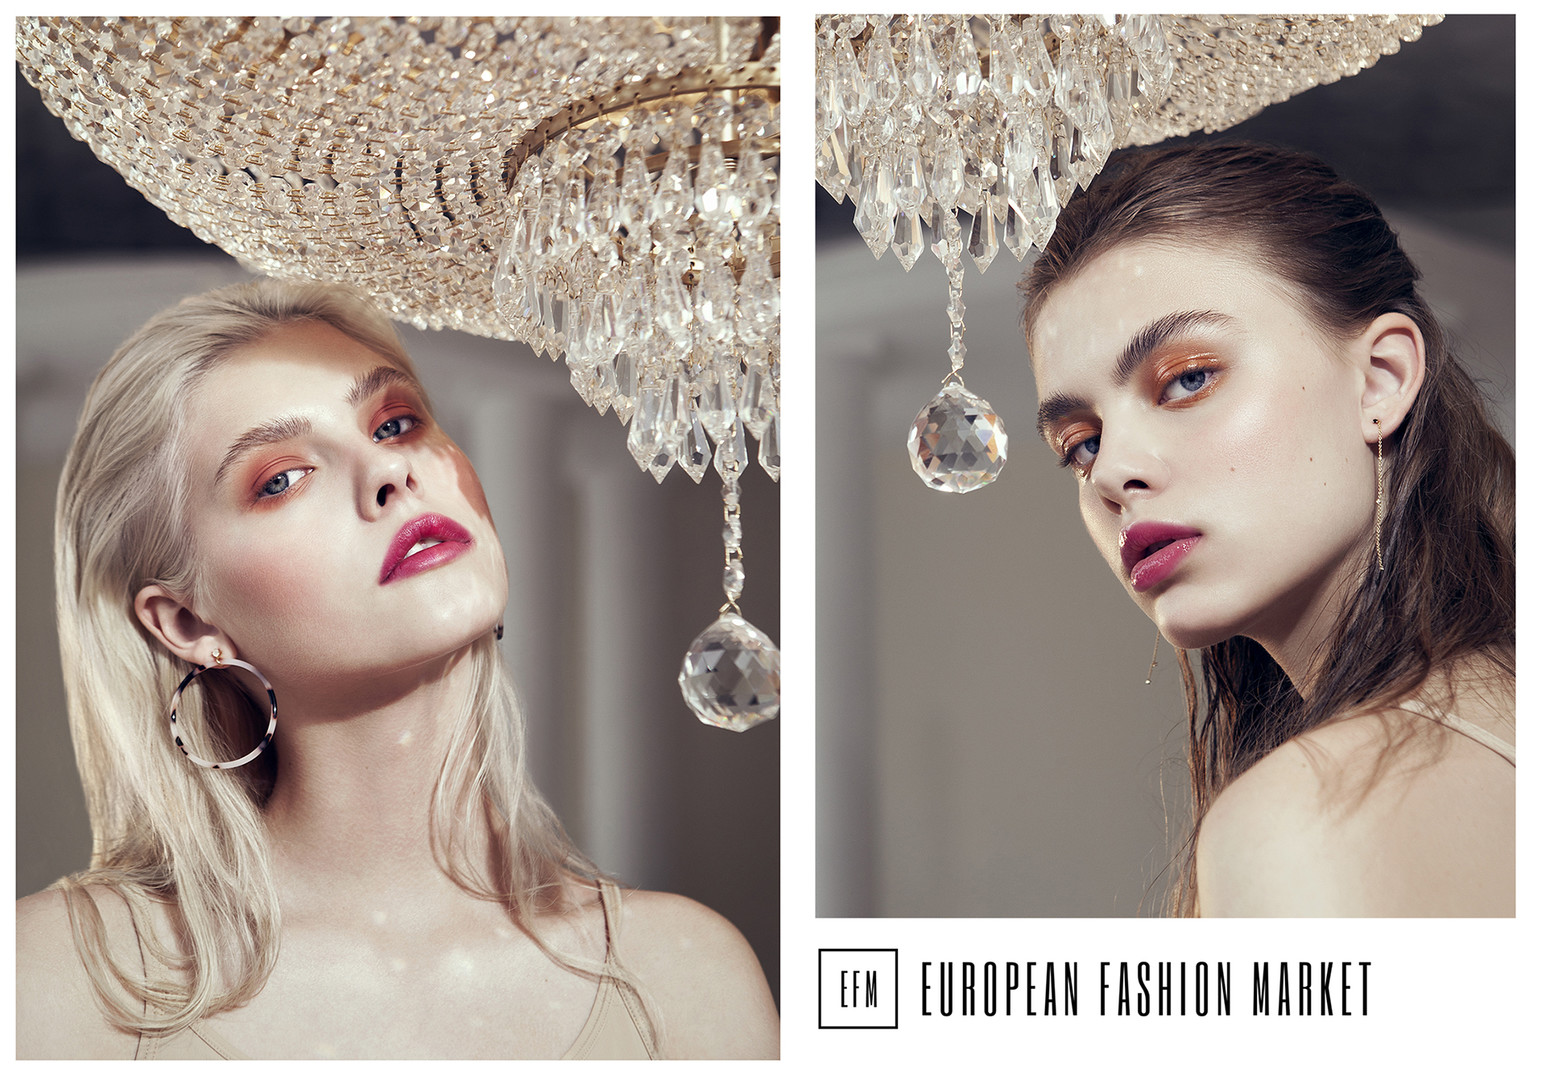 European Fashion Market | Advertising Photography